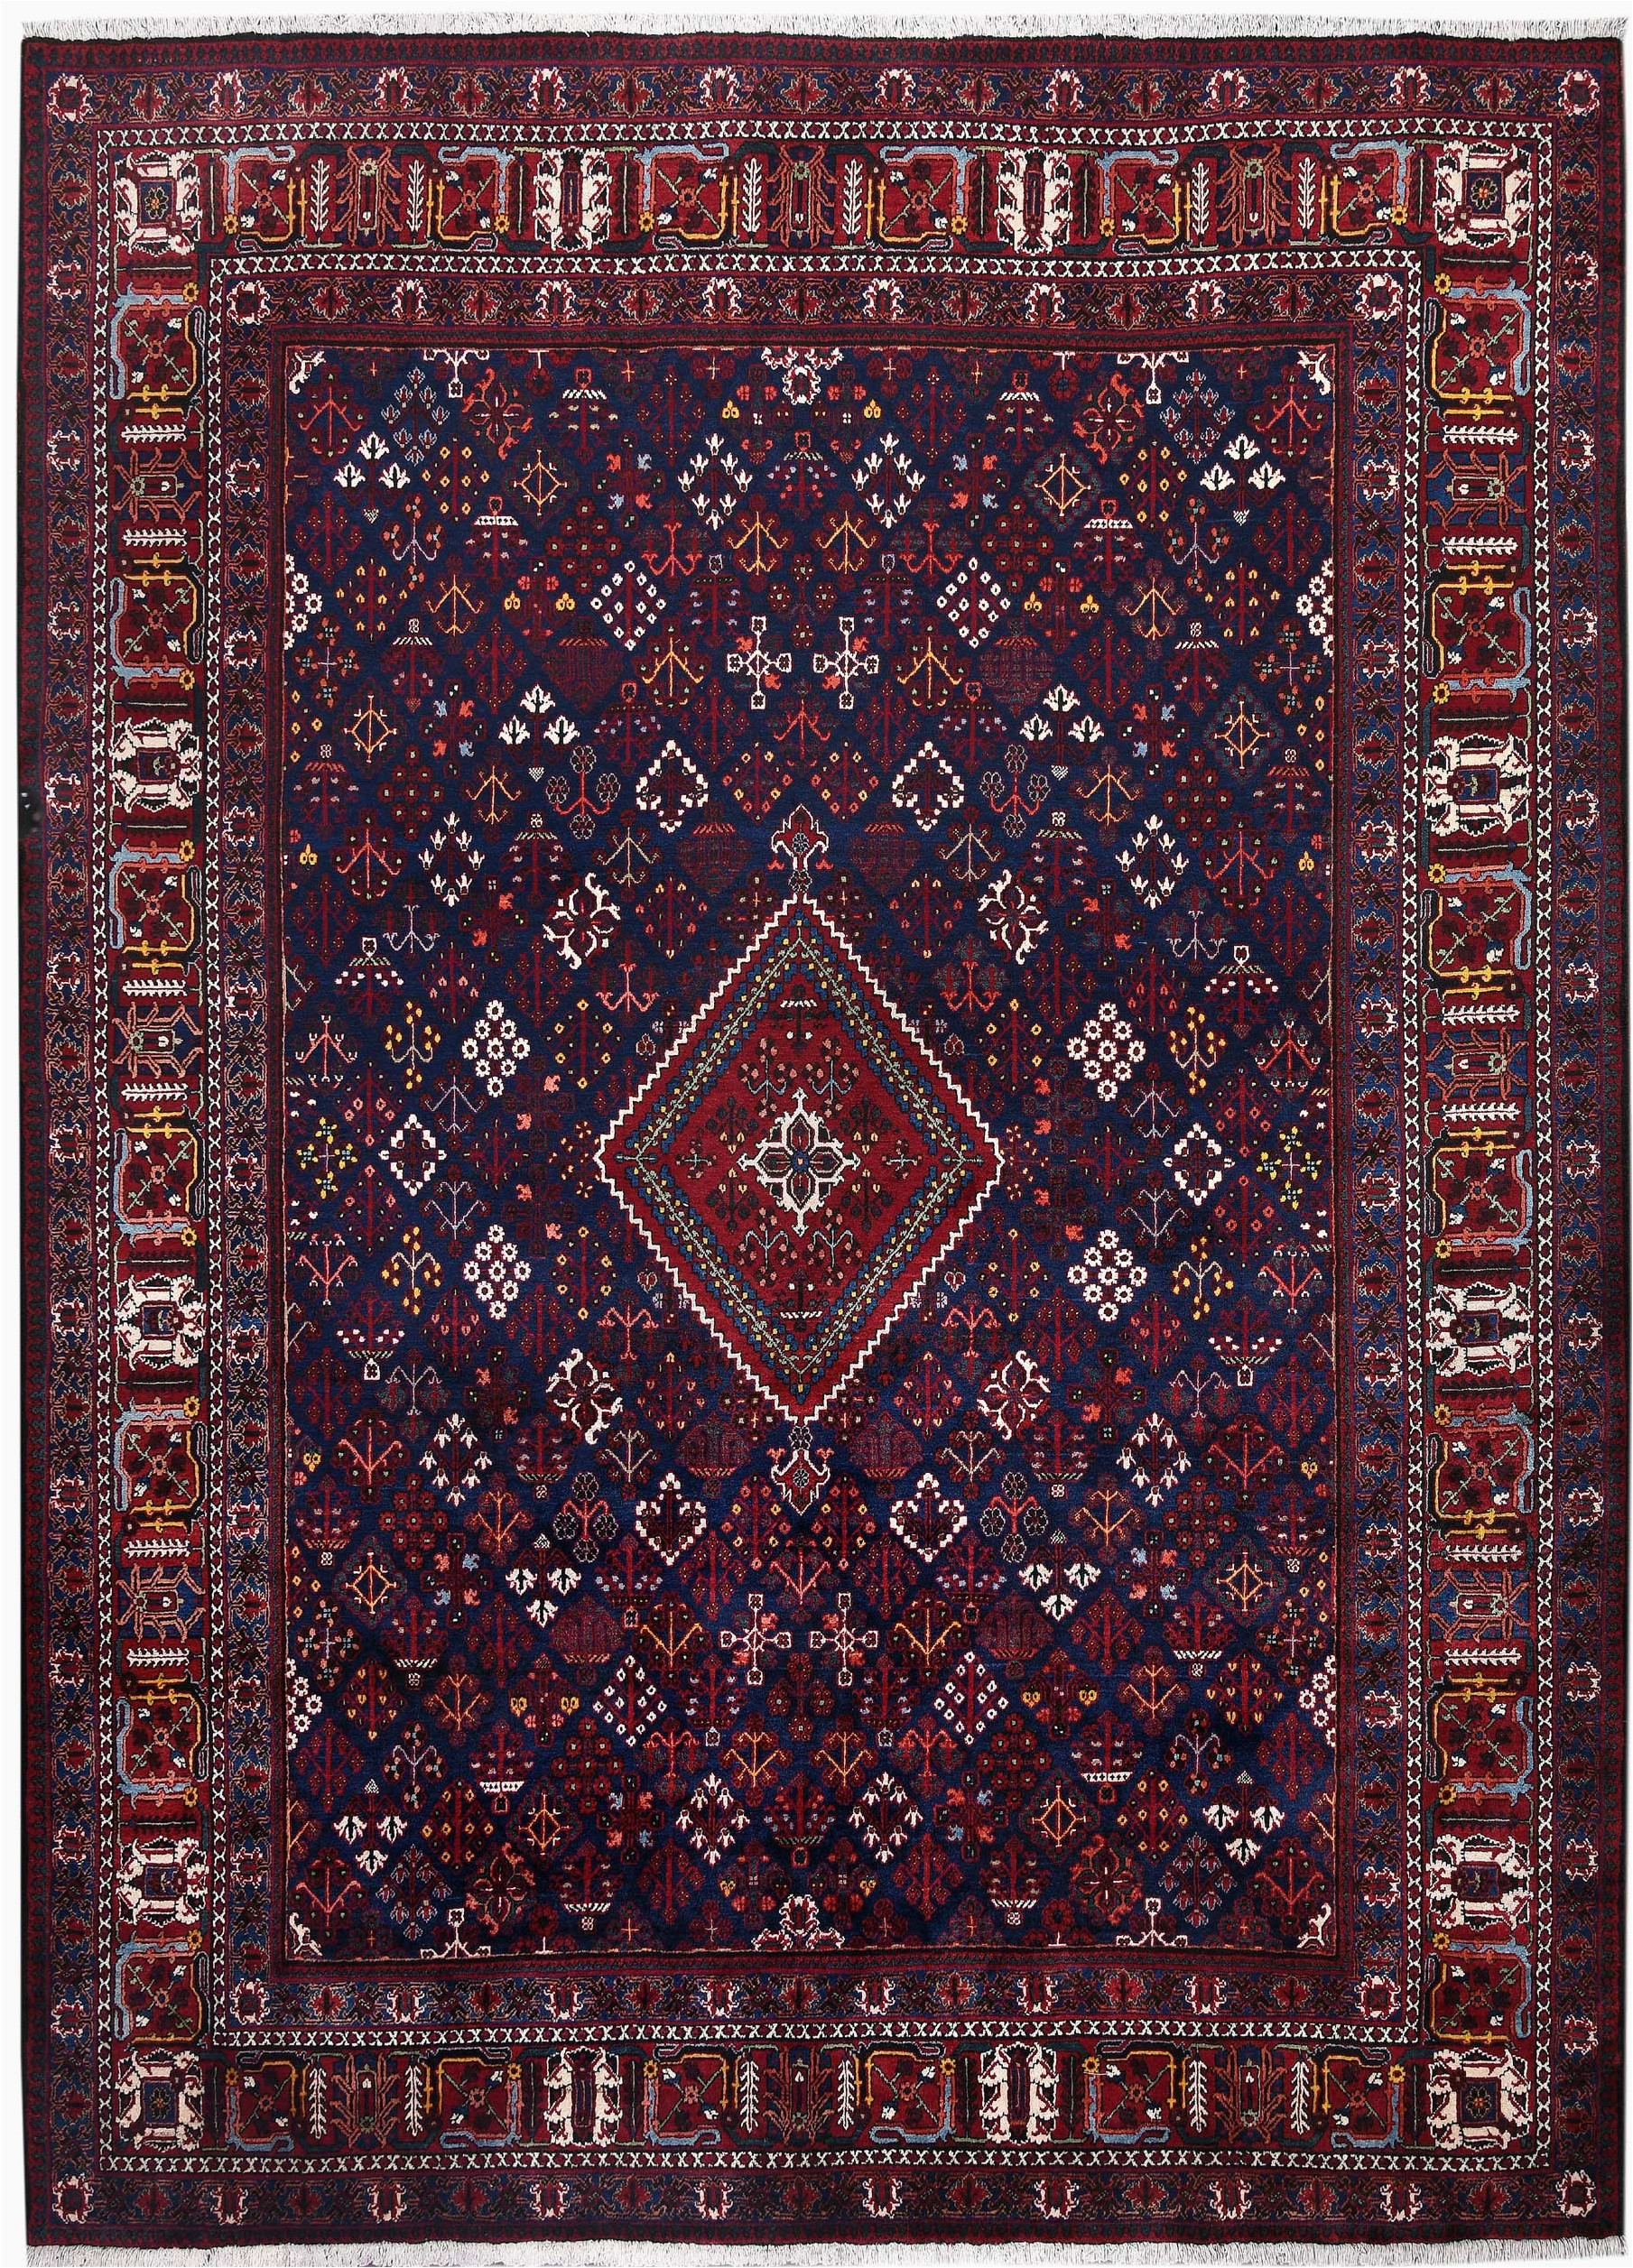 joschaghan 3x4m blue persian rug for sale dr353